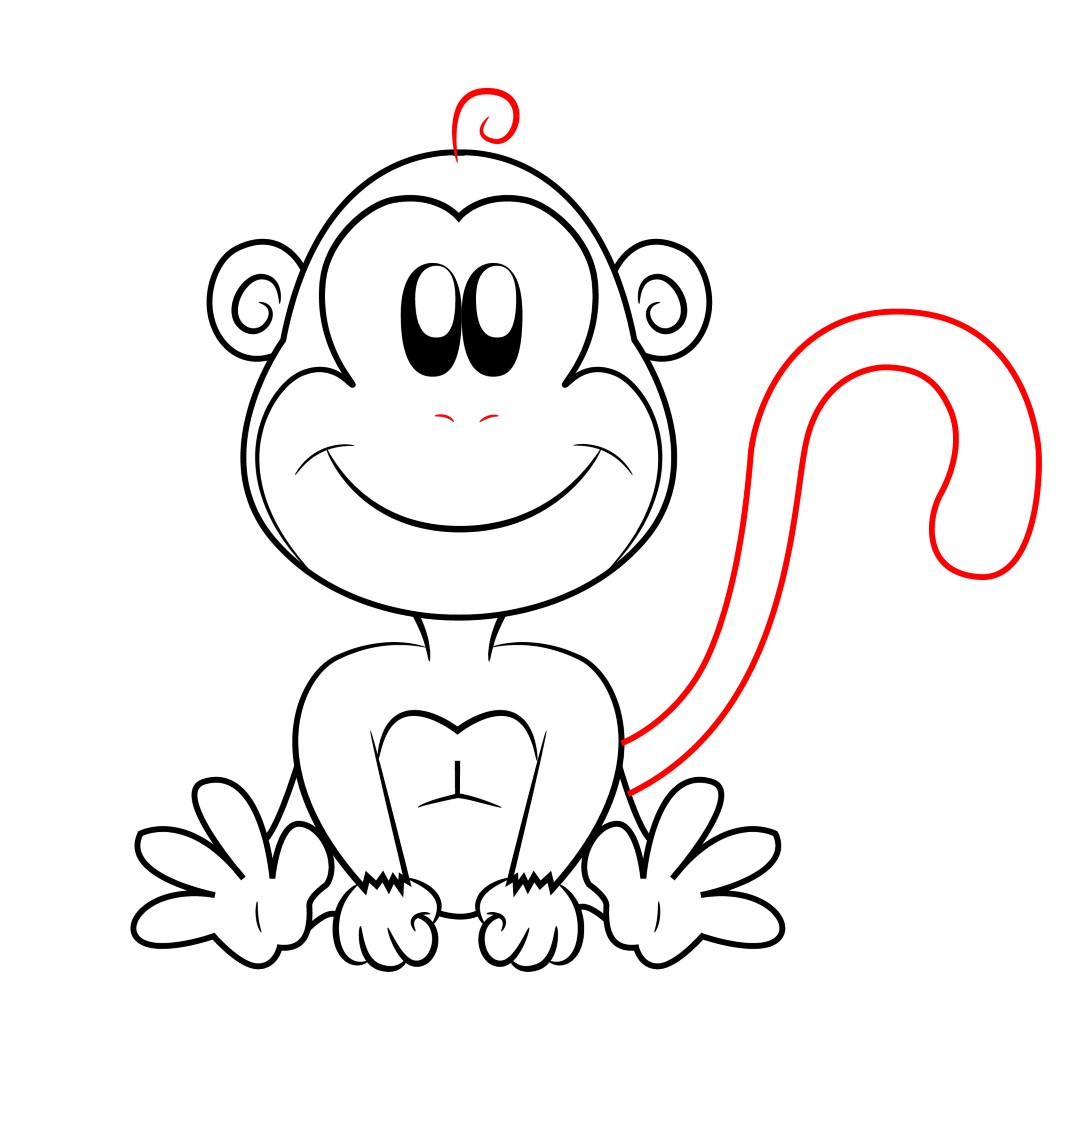 Line Drawing Of Monkey Face : How to draw a cartoon monkey central